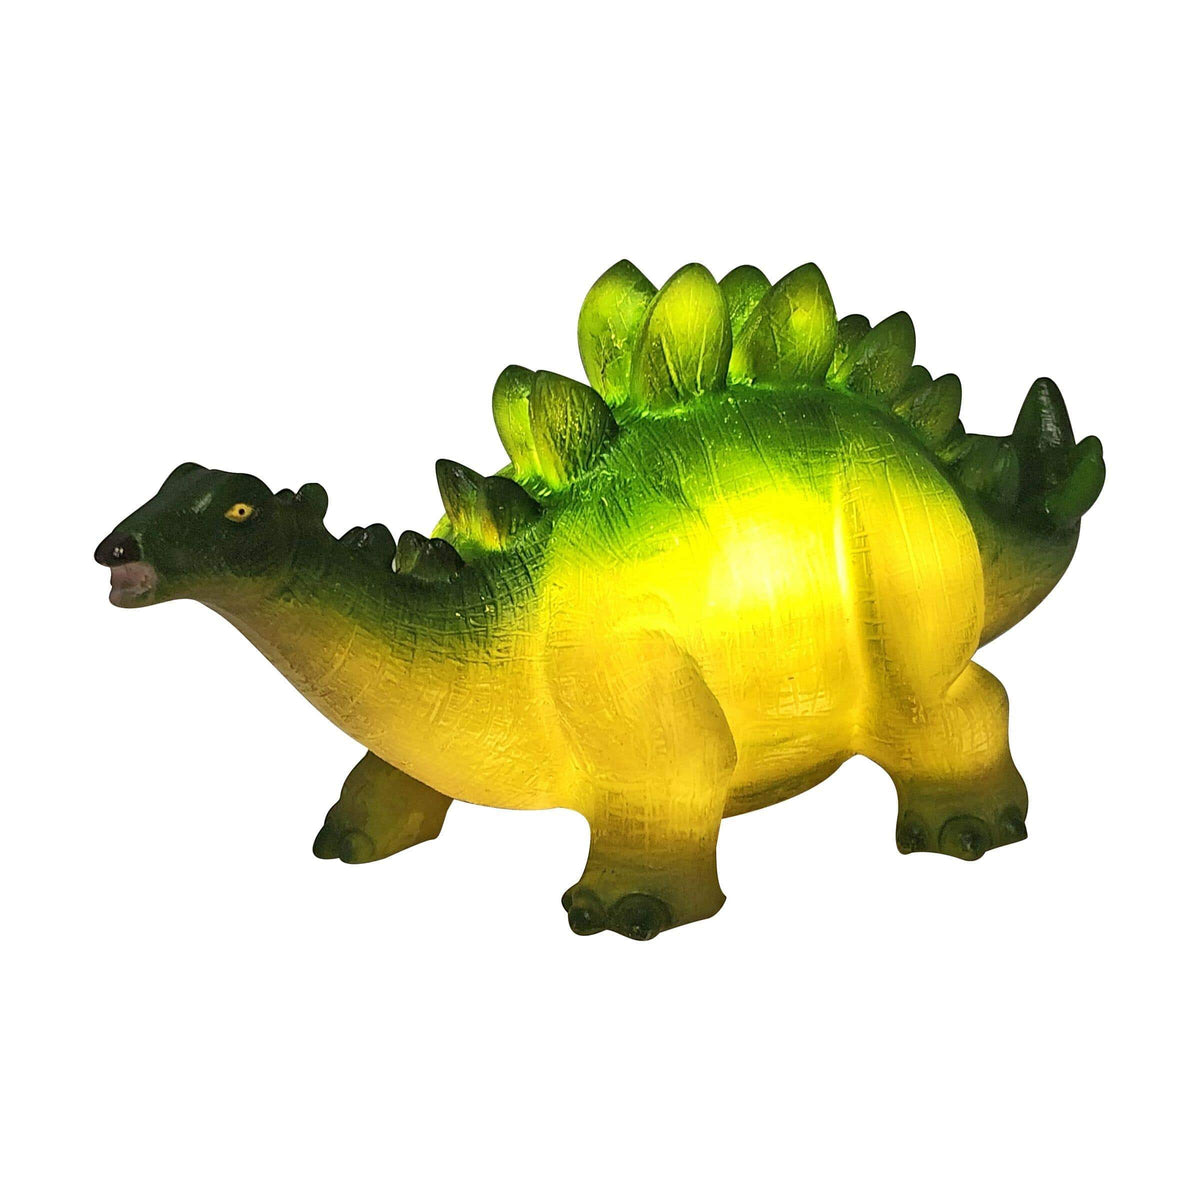 Dinosaur Nightlight - Stegosaurus